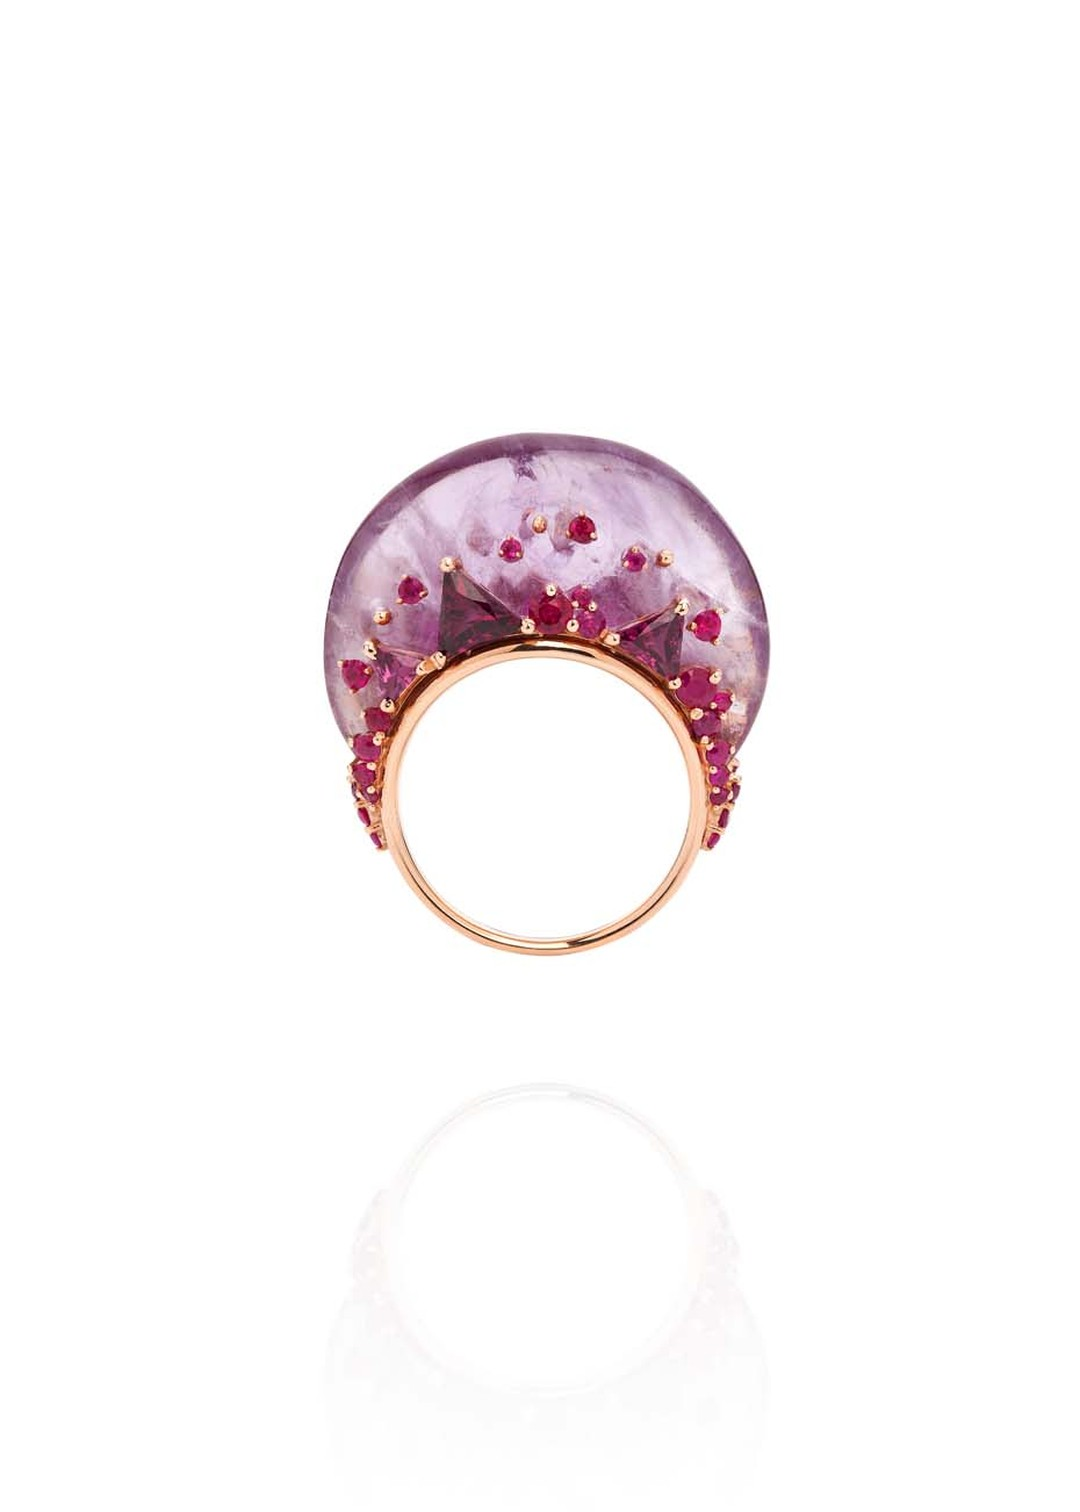 Fernando Jorge Fusion Tall ring in rose gold with rubies, rhodolites and amethyst